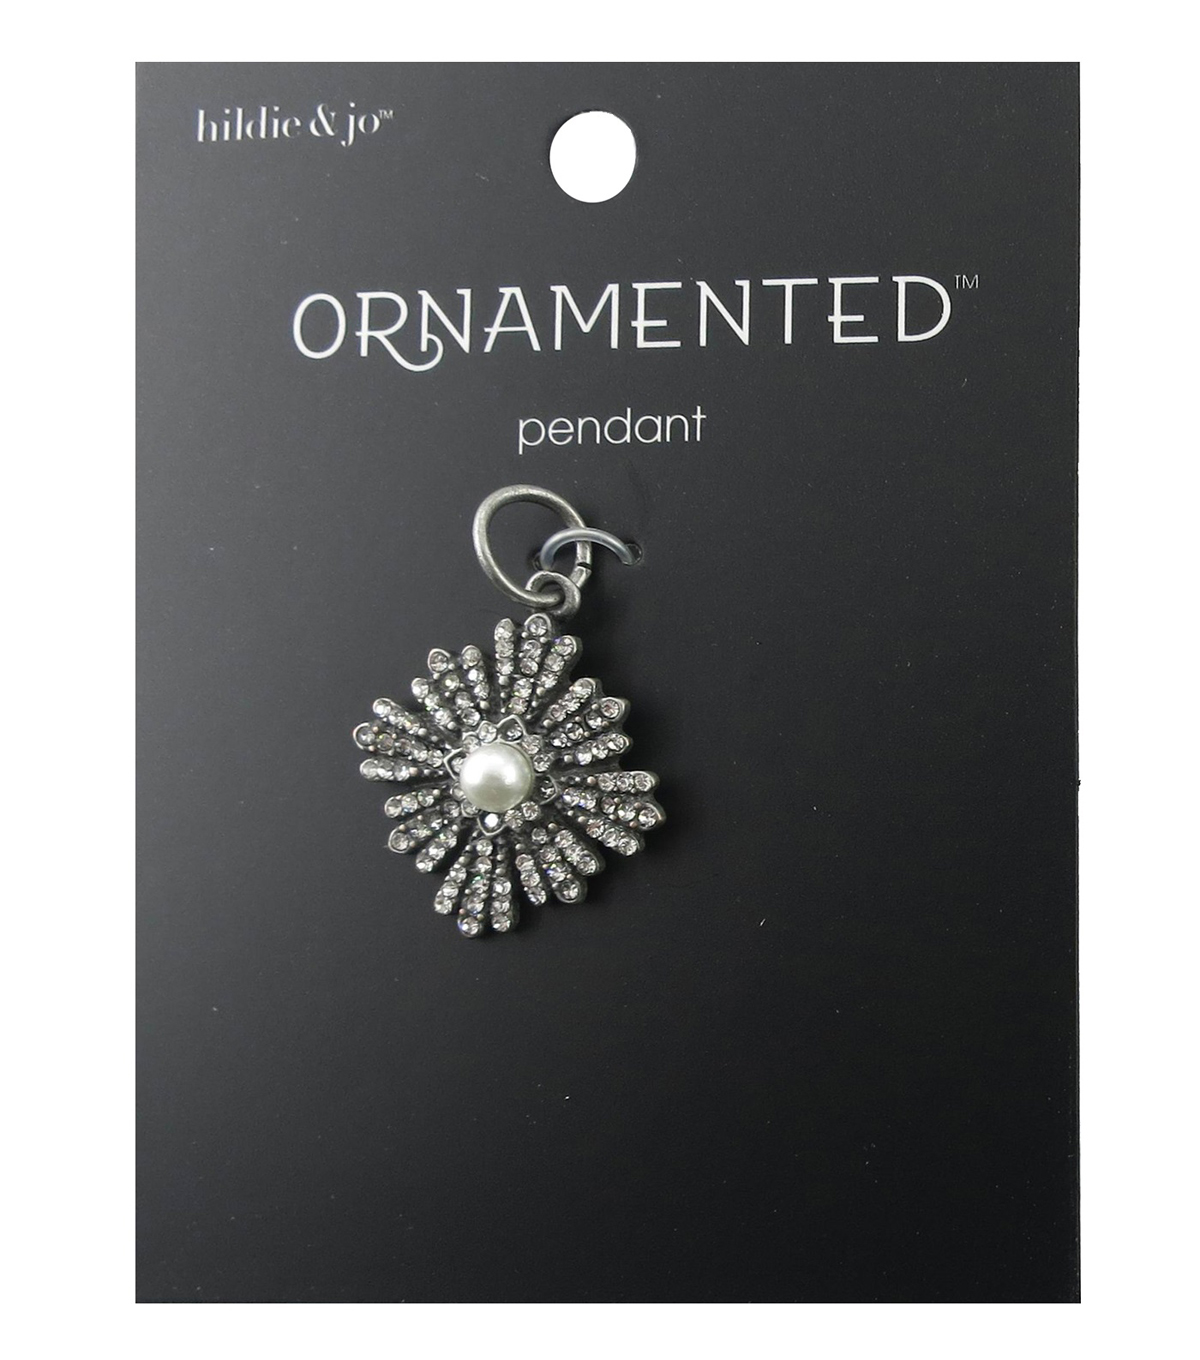 hildie & jo Ornamented Flower Antique Silver Pendant-Pearl